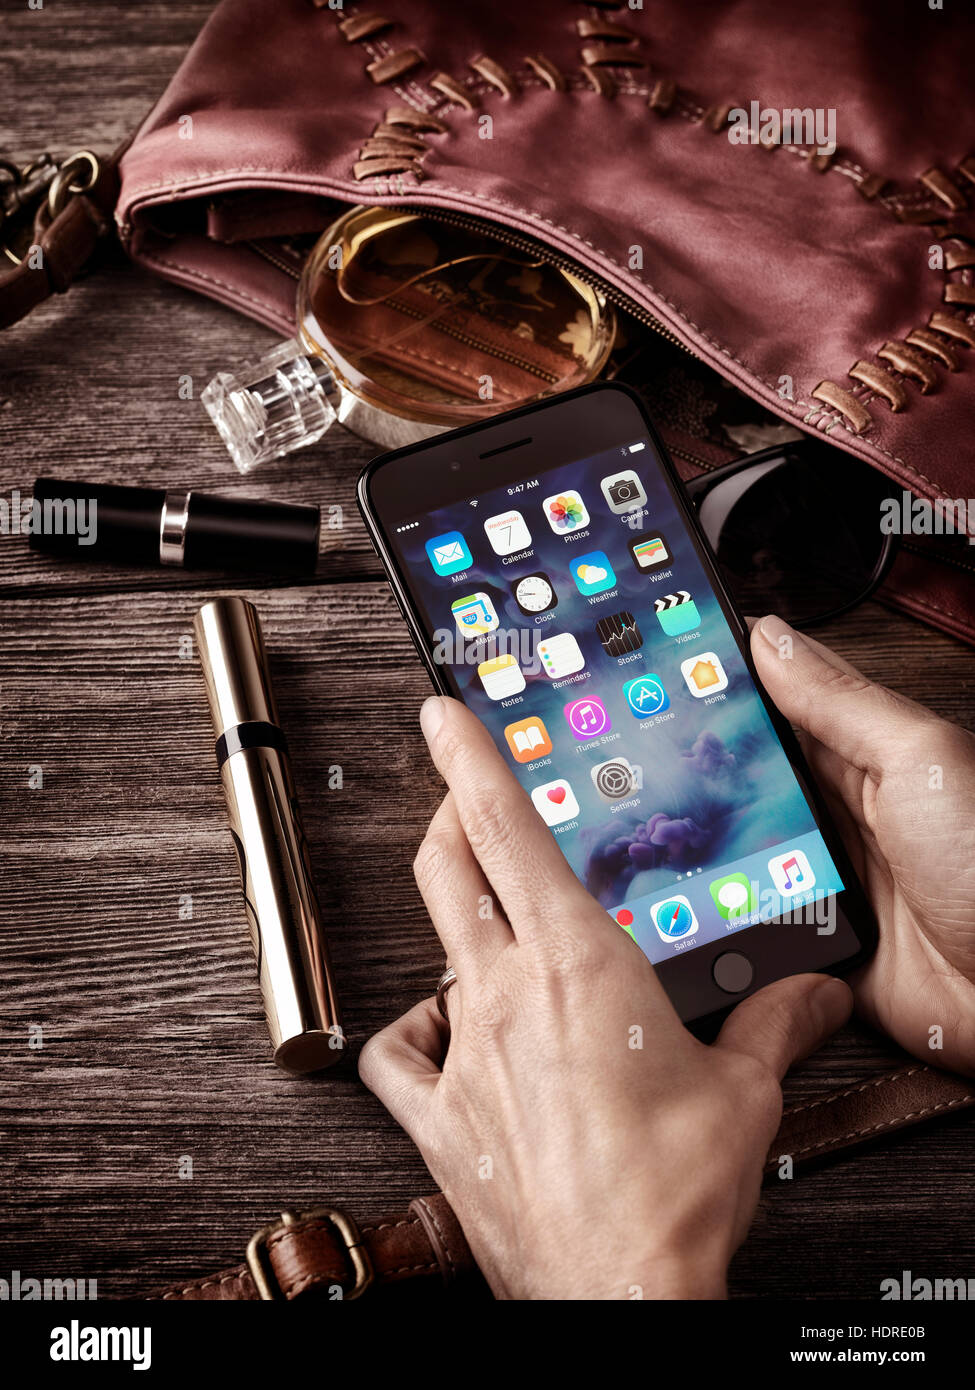 Woman hands holding Apple iPhone 7 Plus with her purse, makeup and accessories on the table conceptual still life - Stock Image